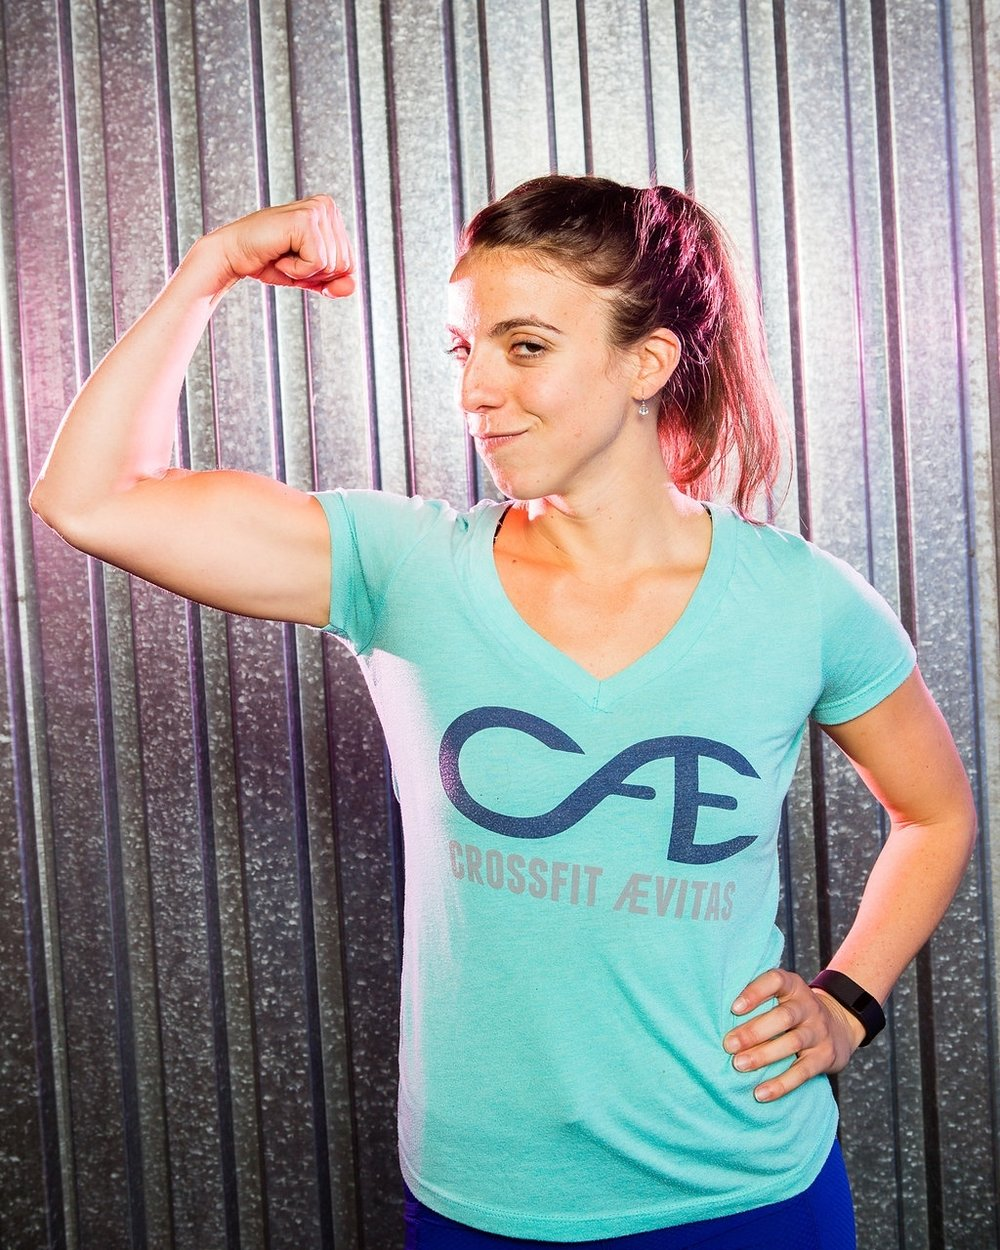 """Laura Ligos - """"I've learned that people will forget what you said, people will forget what you did, but people will never forget how you made them feel.""""― Maya AngelouCrossFit Level-2 TrainerRegistered Dietitian (RD)Board Certification as a Specialist in Sports Dietetics (CSSD)- Check out Laura's other passion (Nutrition) at The Sassy Dietitian"""